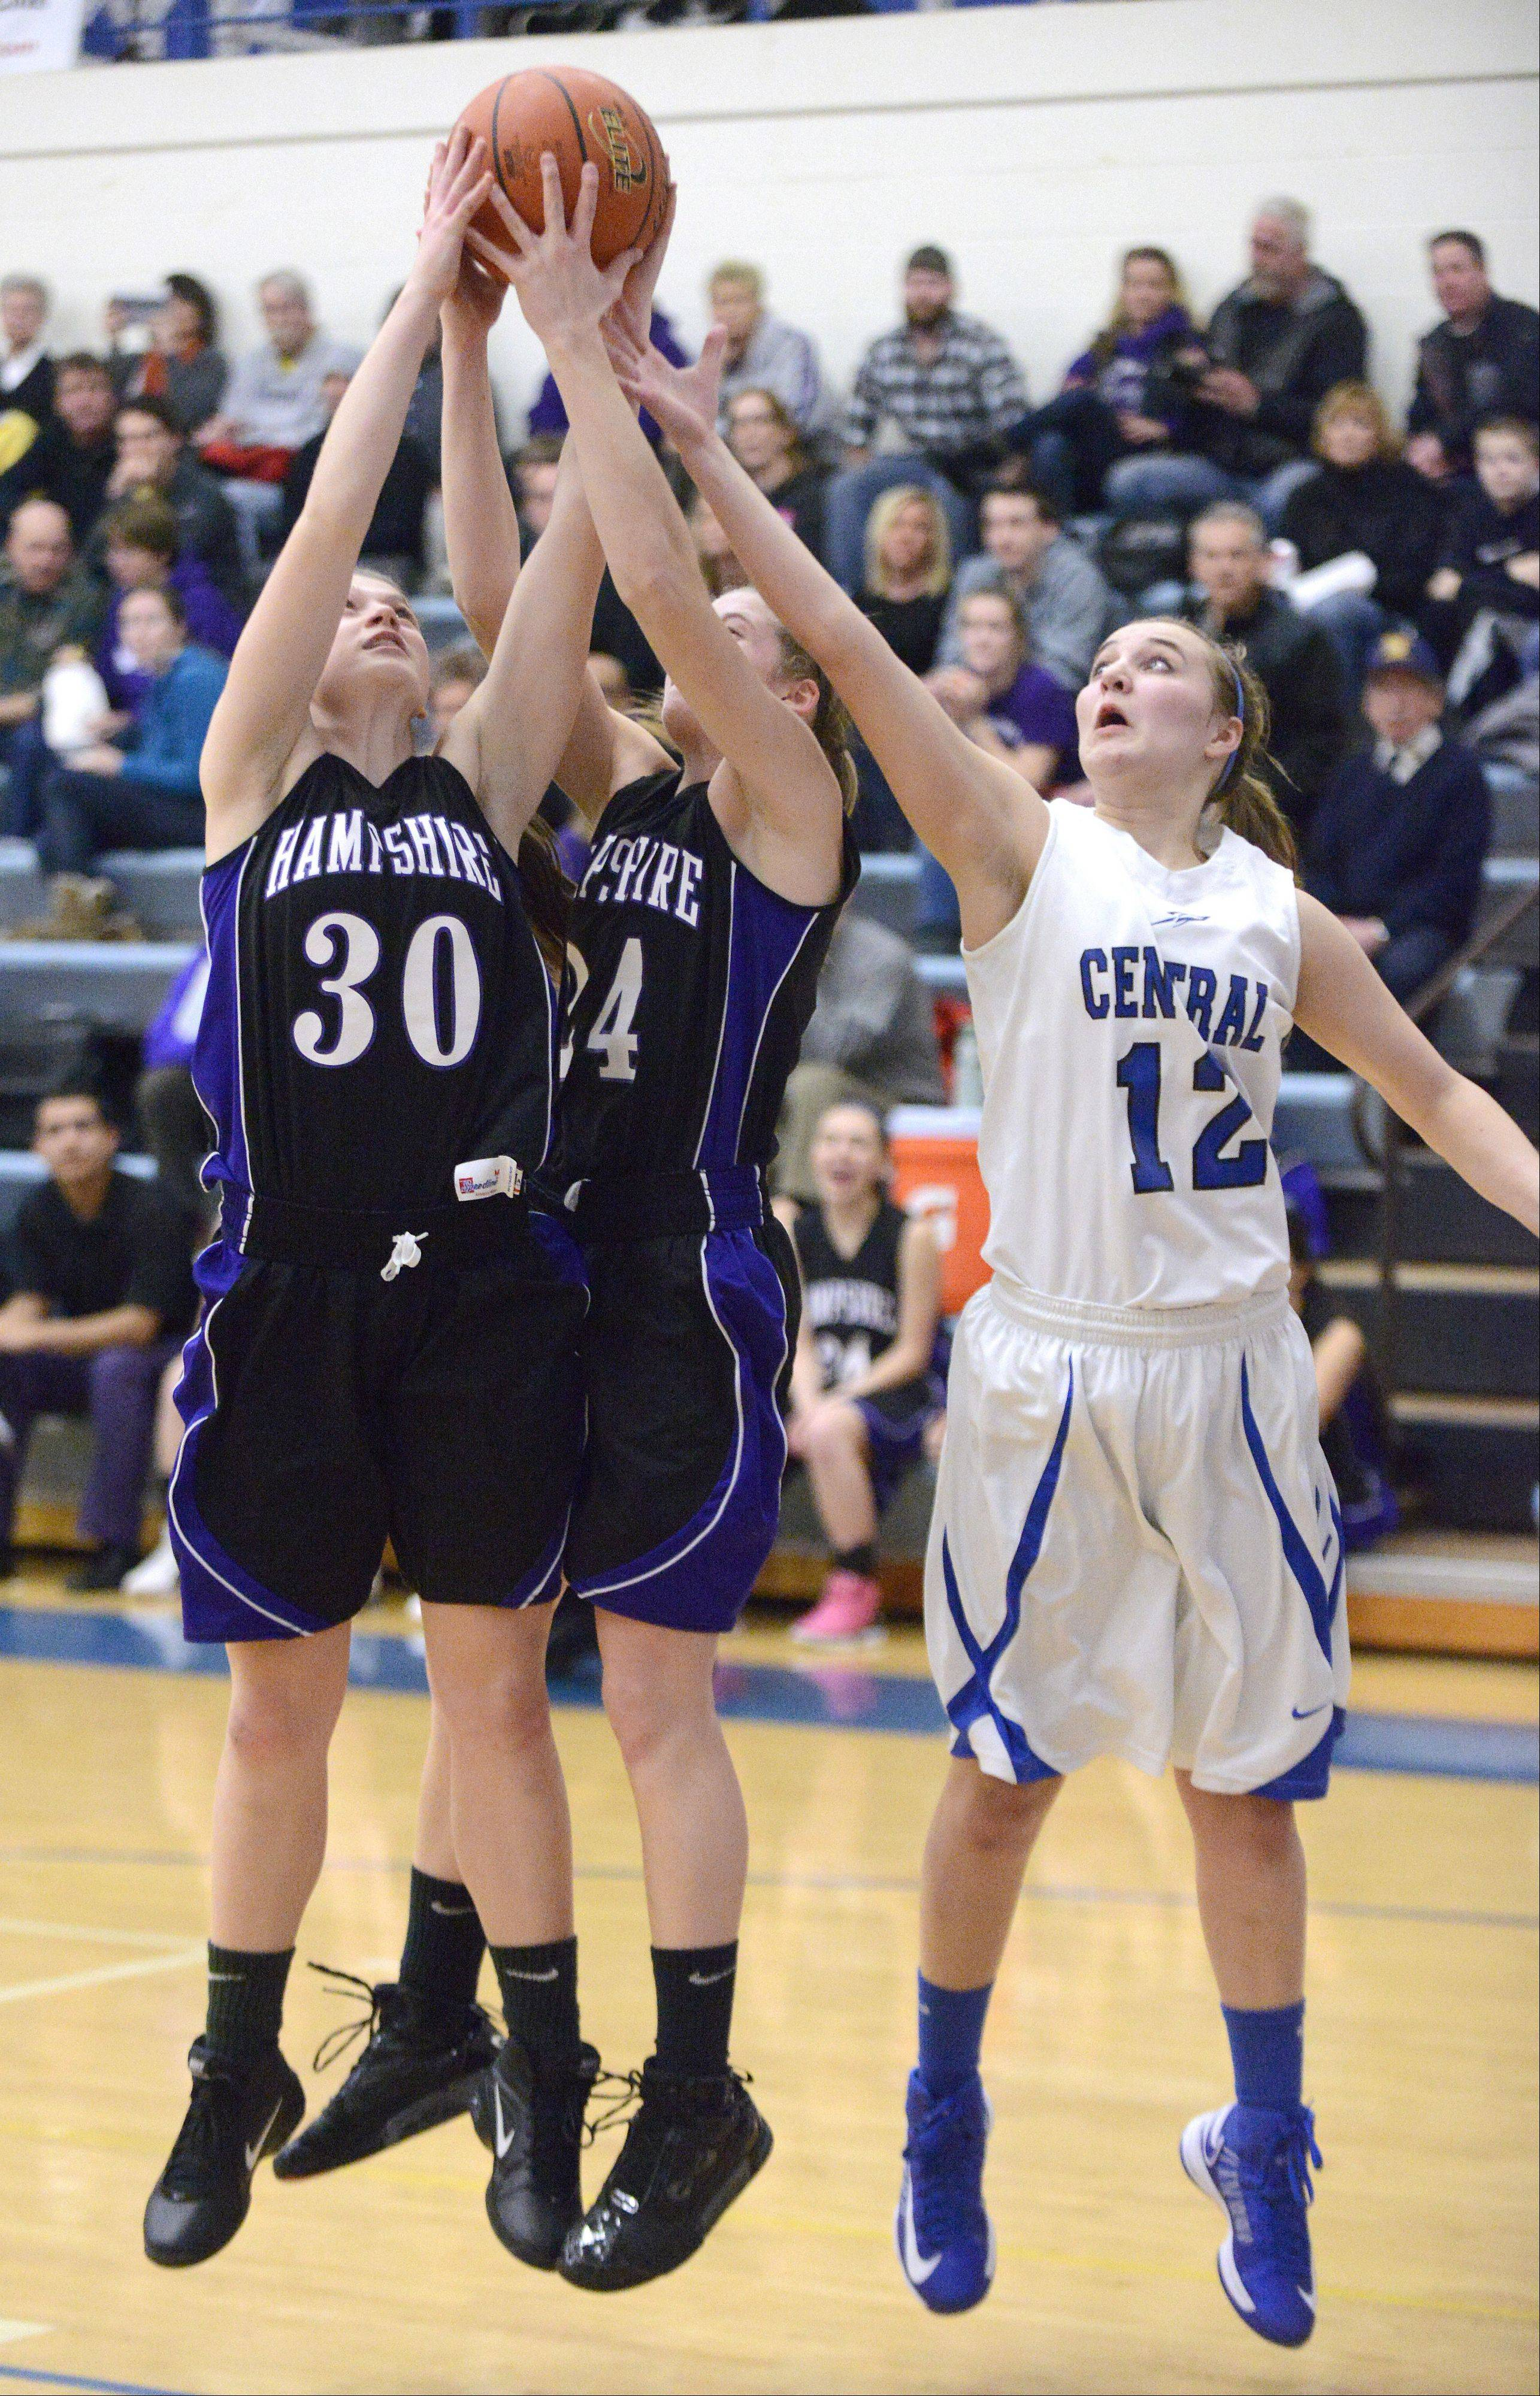 Hampshire's Tricia Dumoulin and Nikki Dumoulin reach for a rebound with Burlington Central's Shelby Holt in the second quarter.